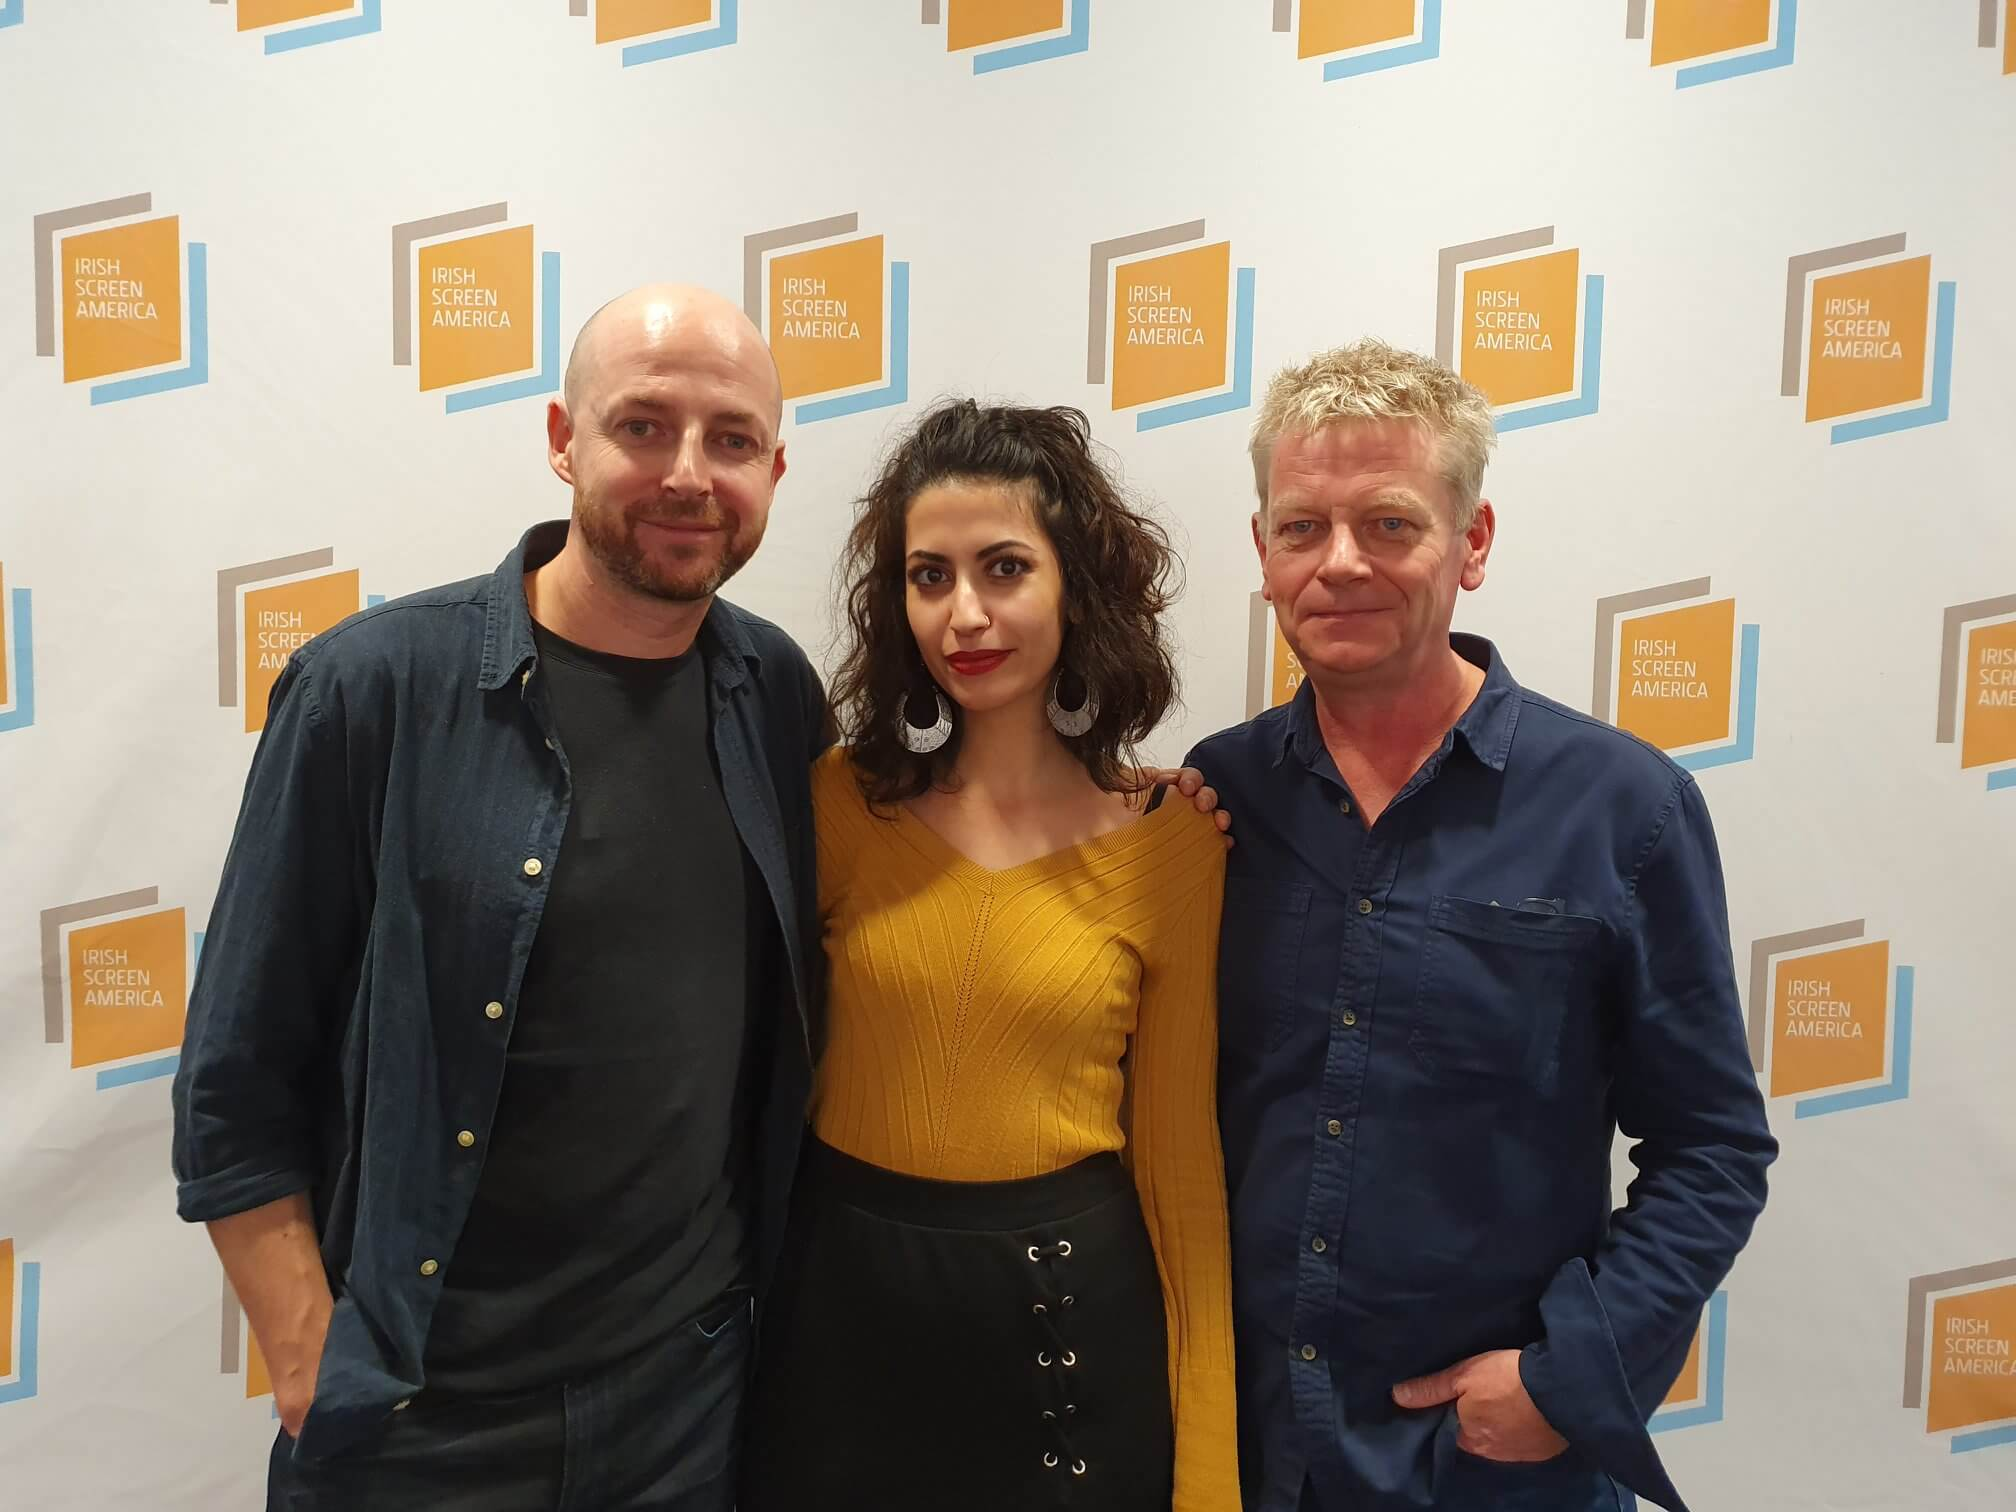 """Andrew McConell (L), Walaa Ghussein (C), and Garry Keane (R) at a New York City screening of """"Gaza,"""" October 27, 2019. (Photo: Facebook/The Irish Screen America)"""